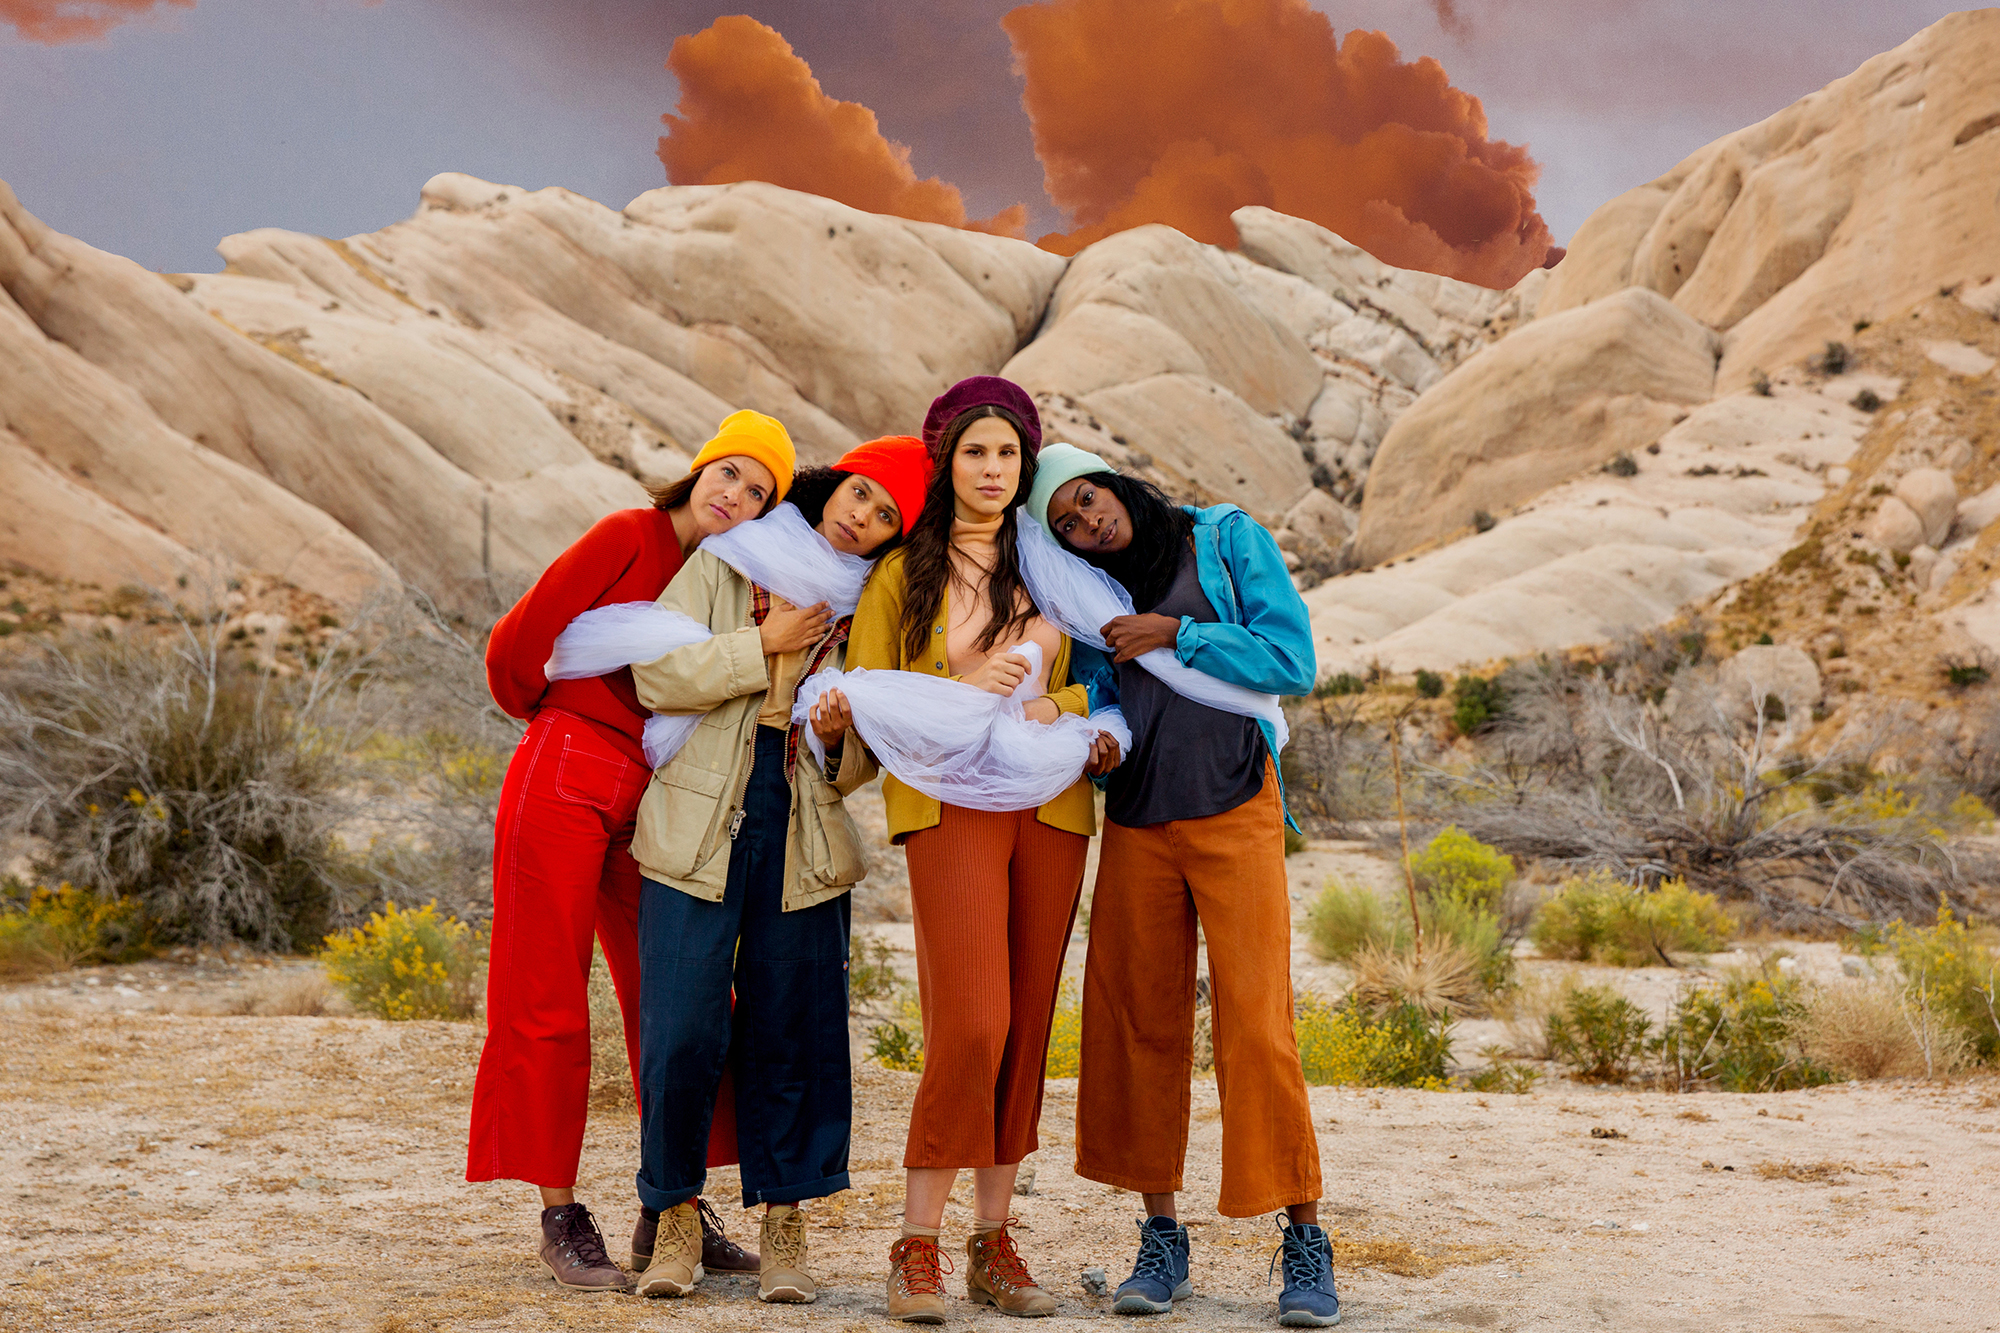 Four women standing together in the desert wearing colorful clothing